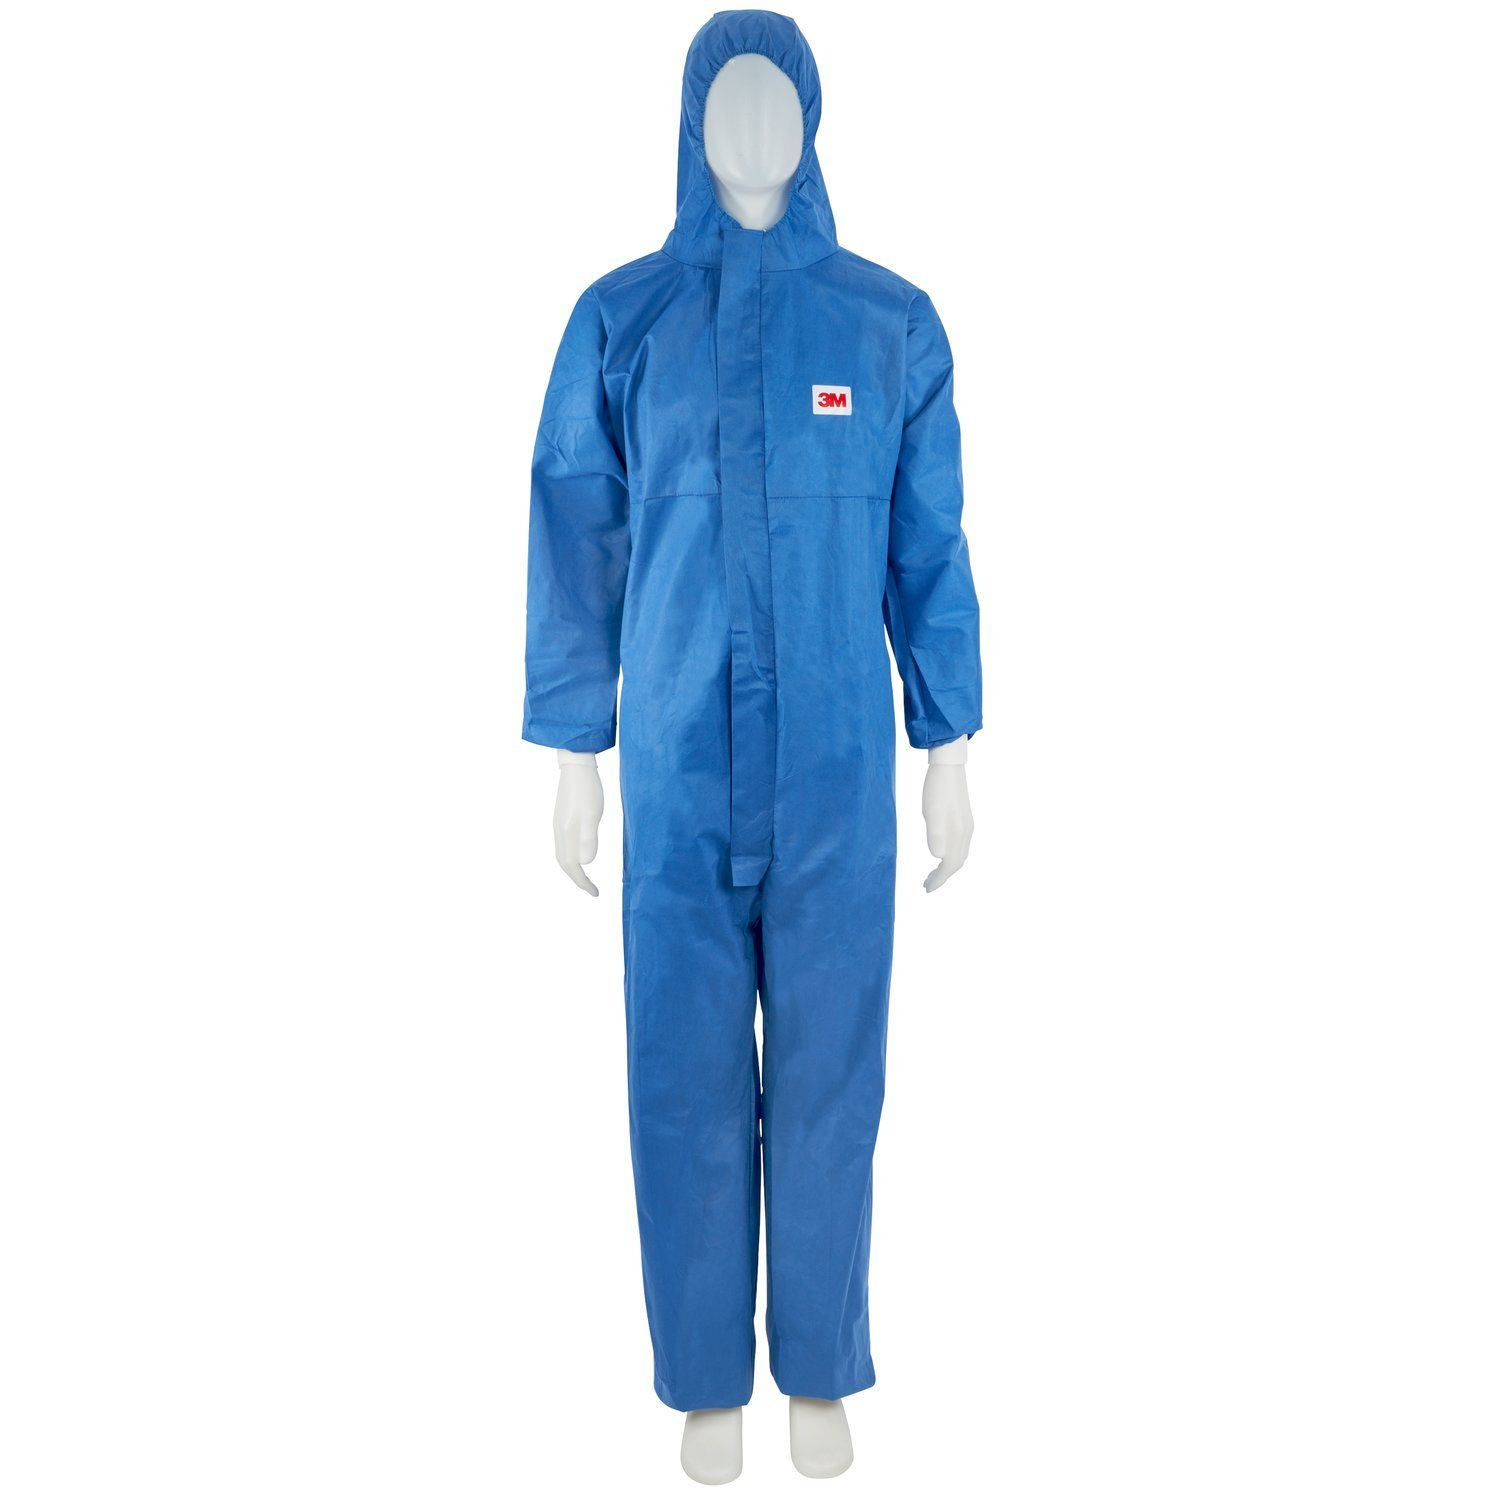 Blue 4532 3M Protective Coverall B-2XL